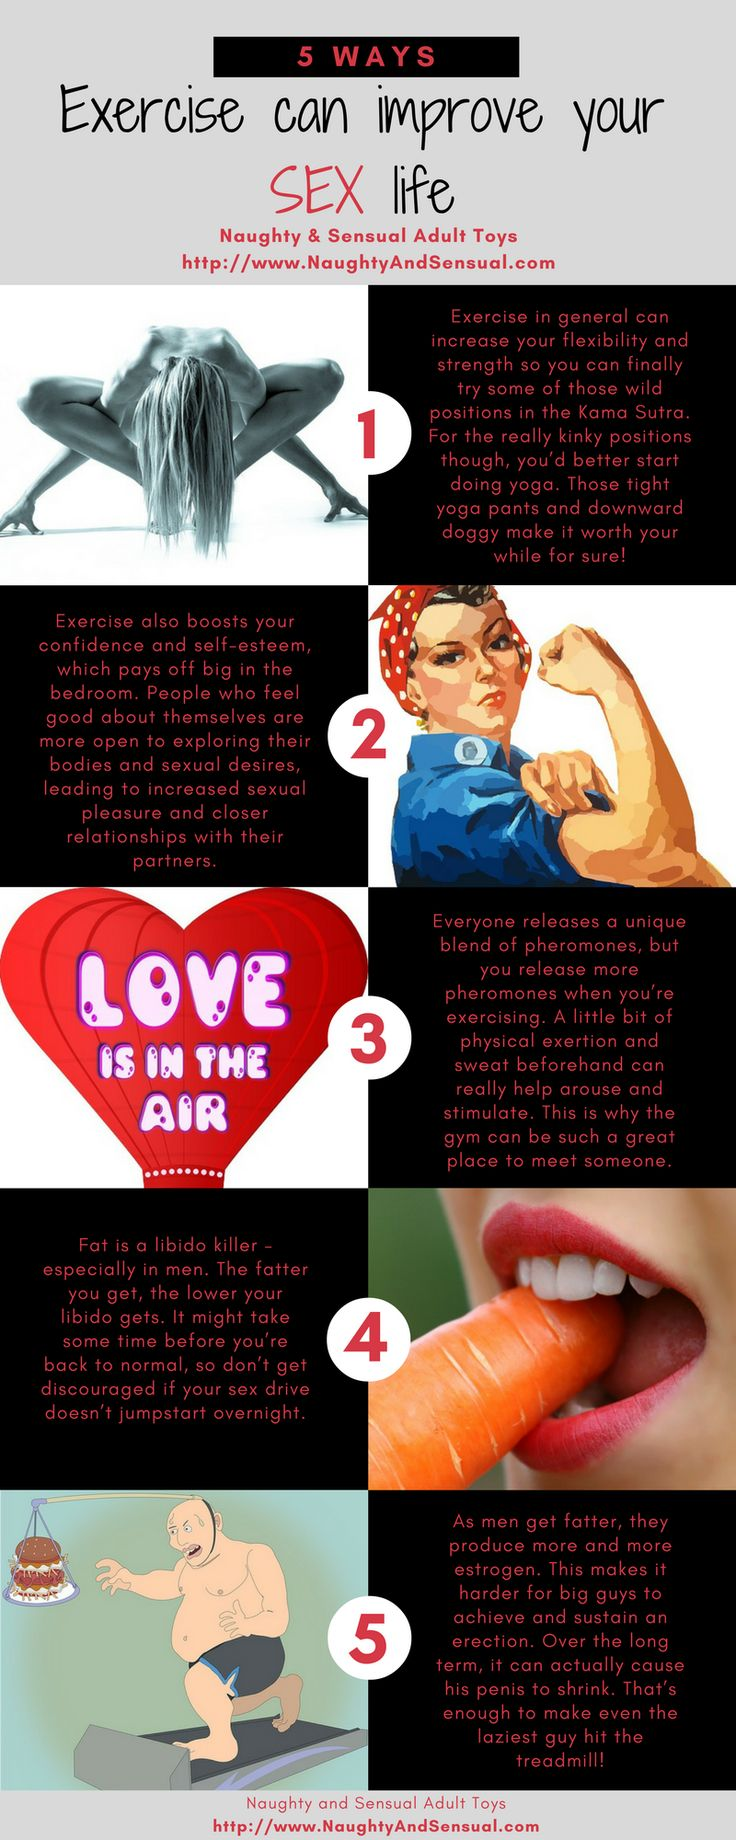 30 best sex tips images on pinterest relationships bedroom 5 ways exercise can improve your sex life exercise sexercise healthysex bettersex